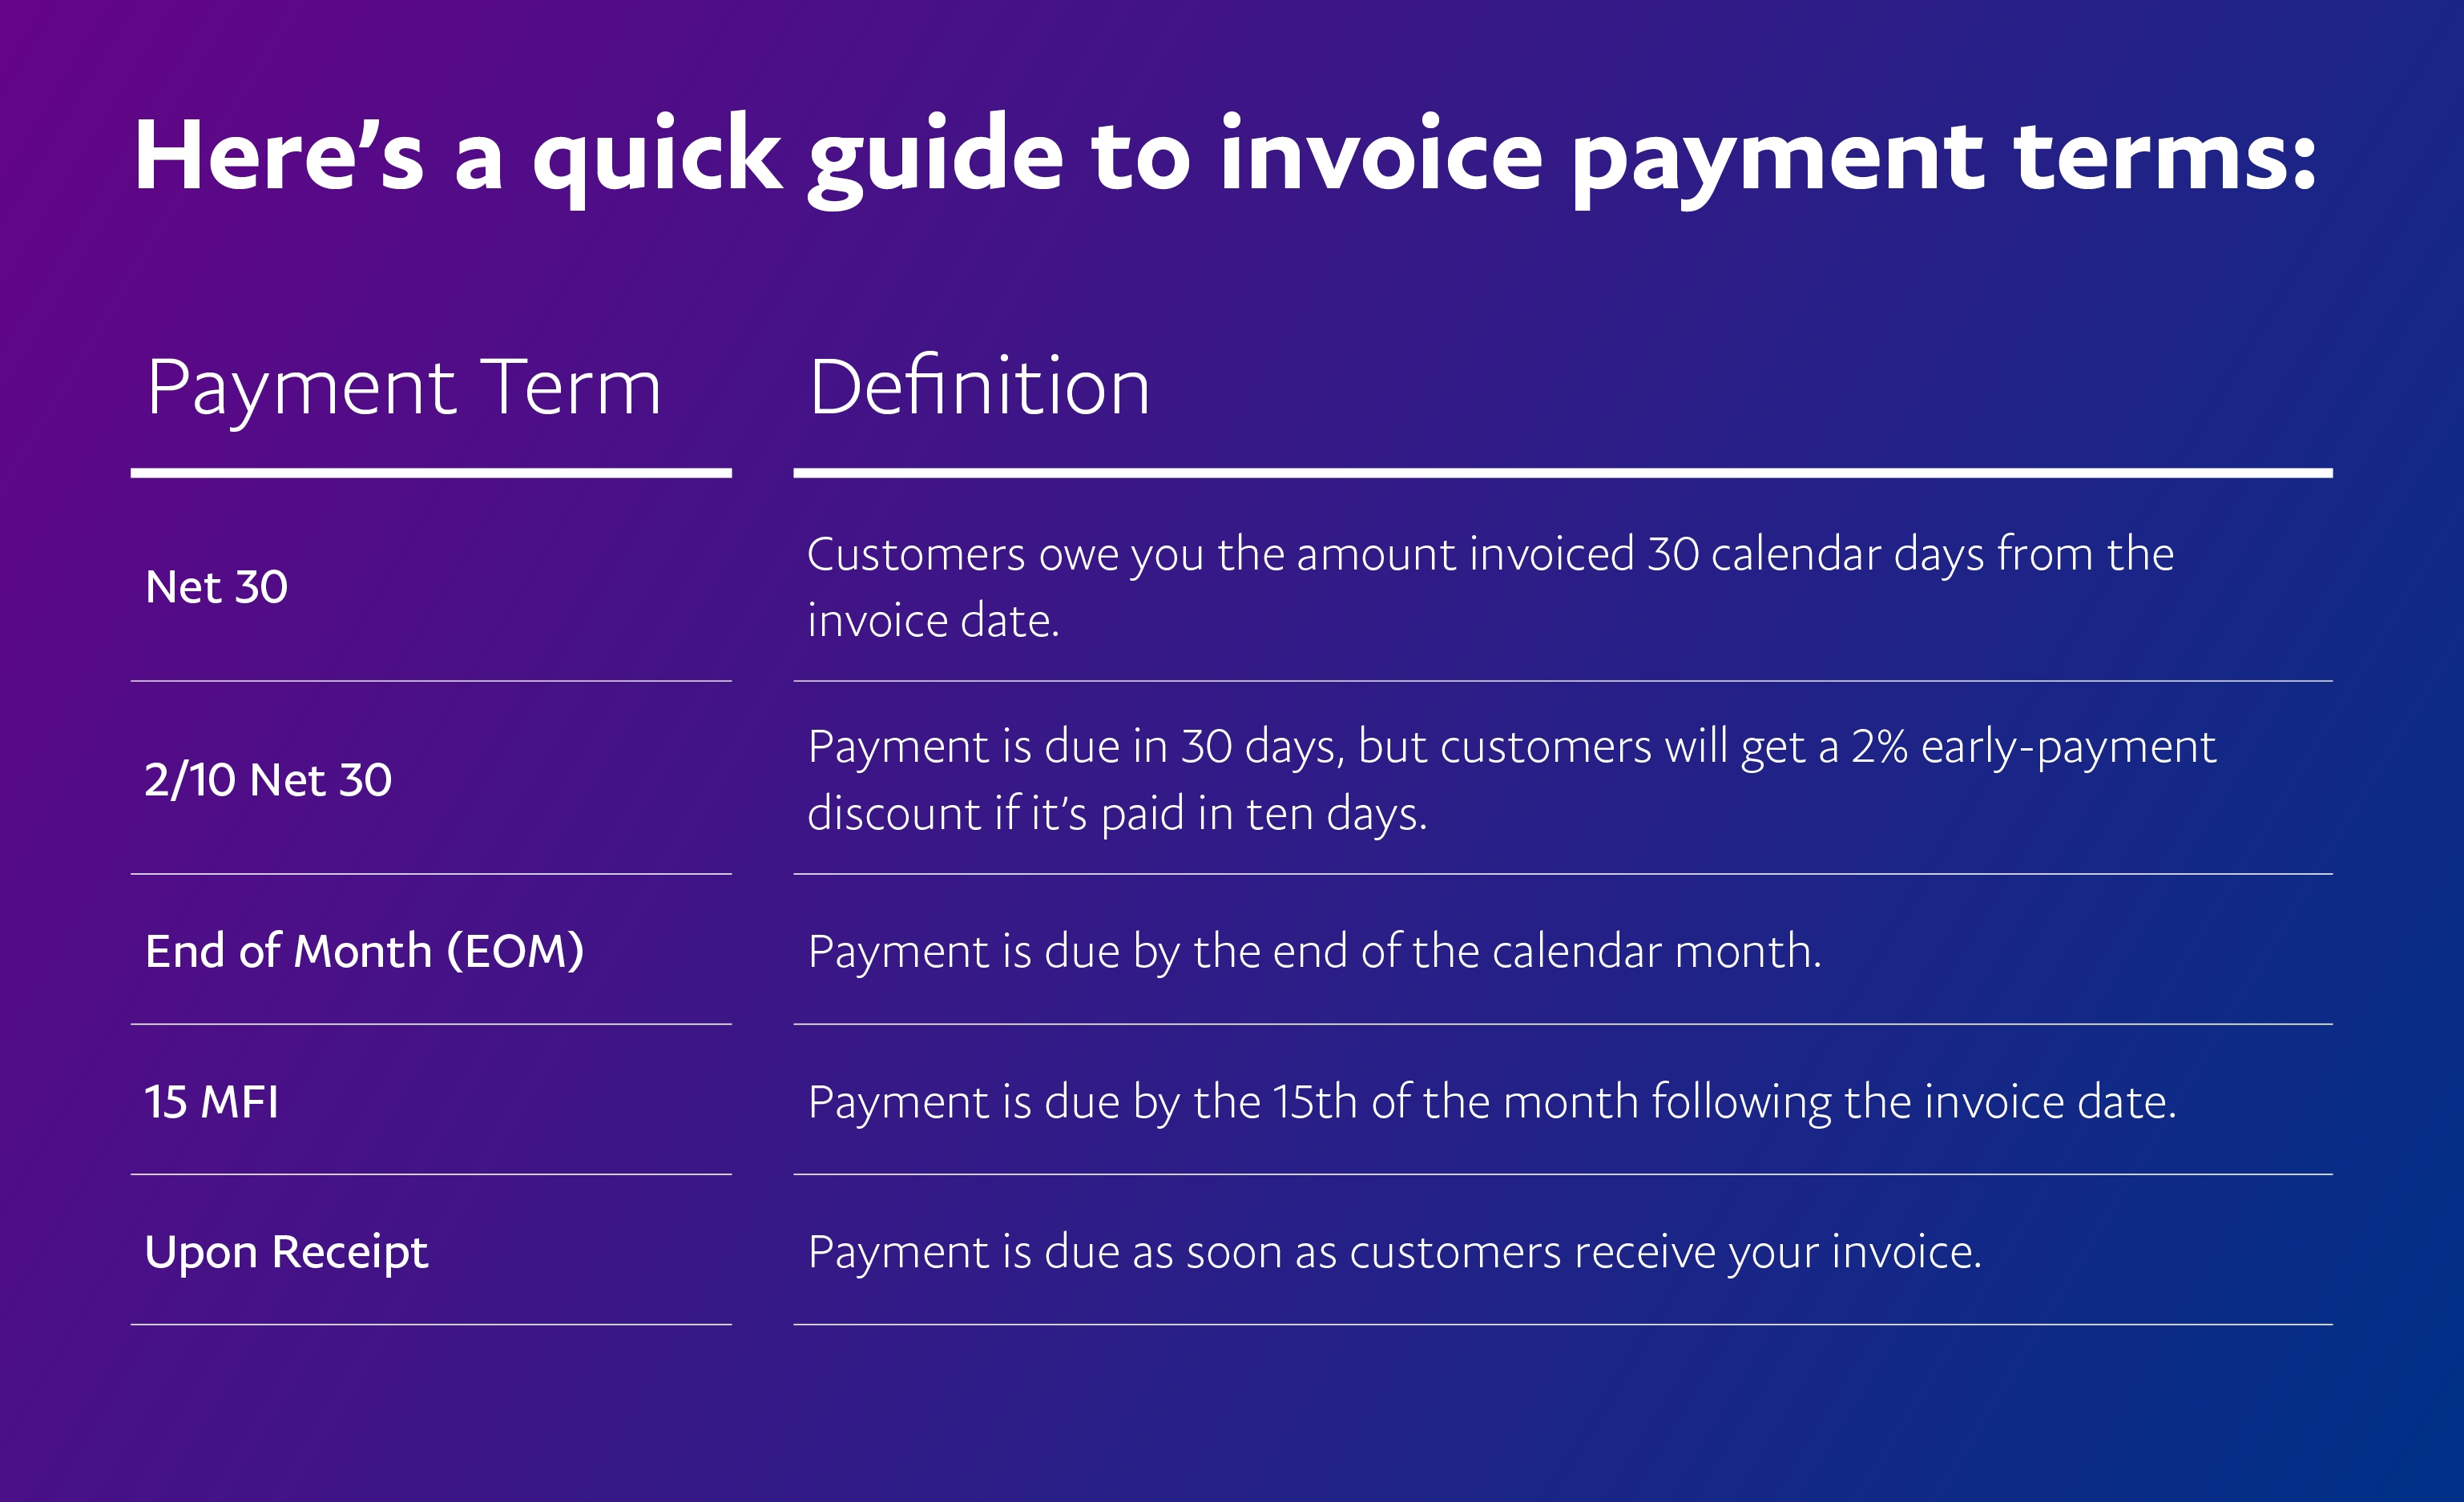 5 popular invoice payment terms paypal payment due within 30 days